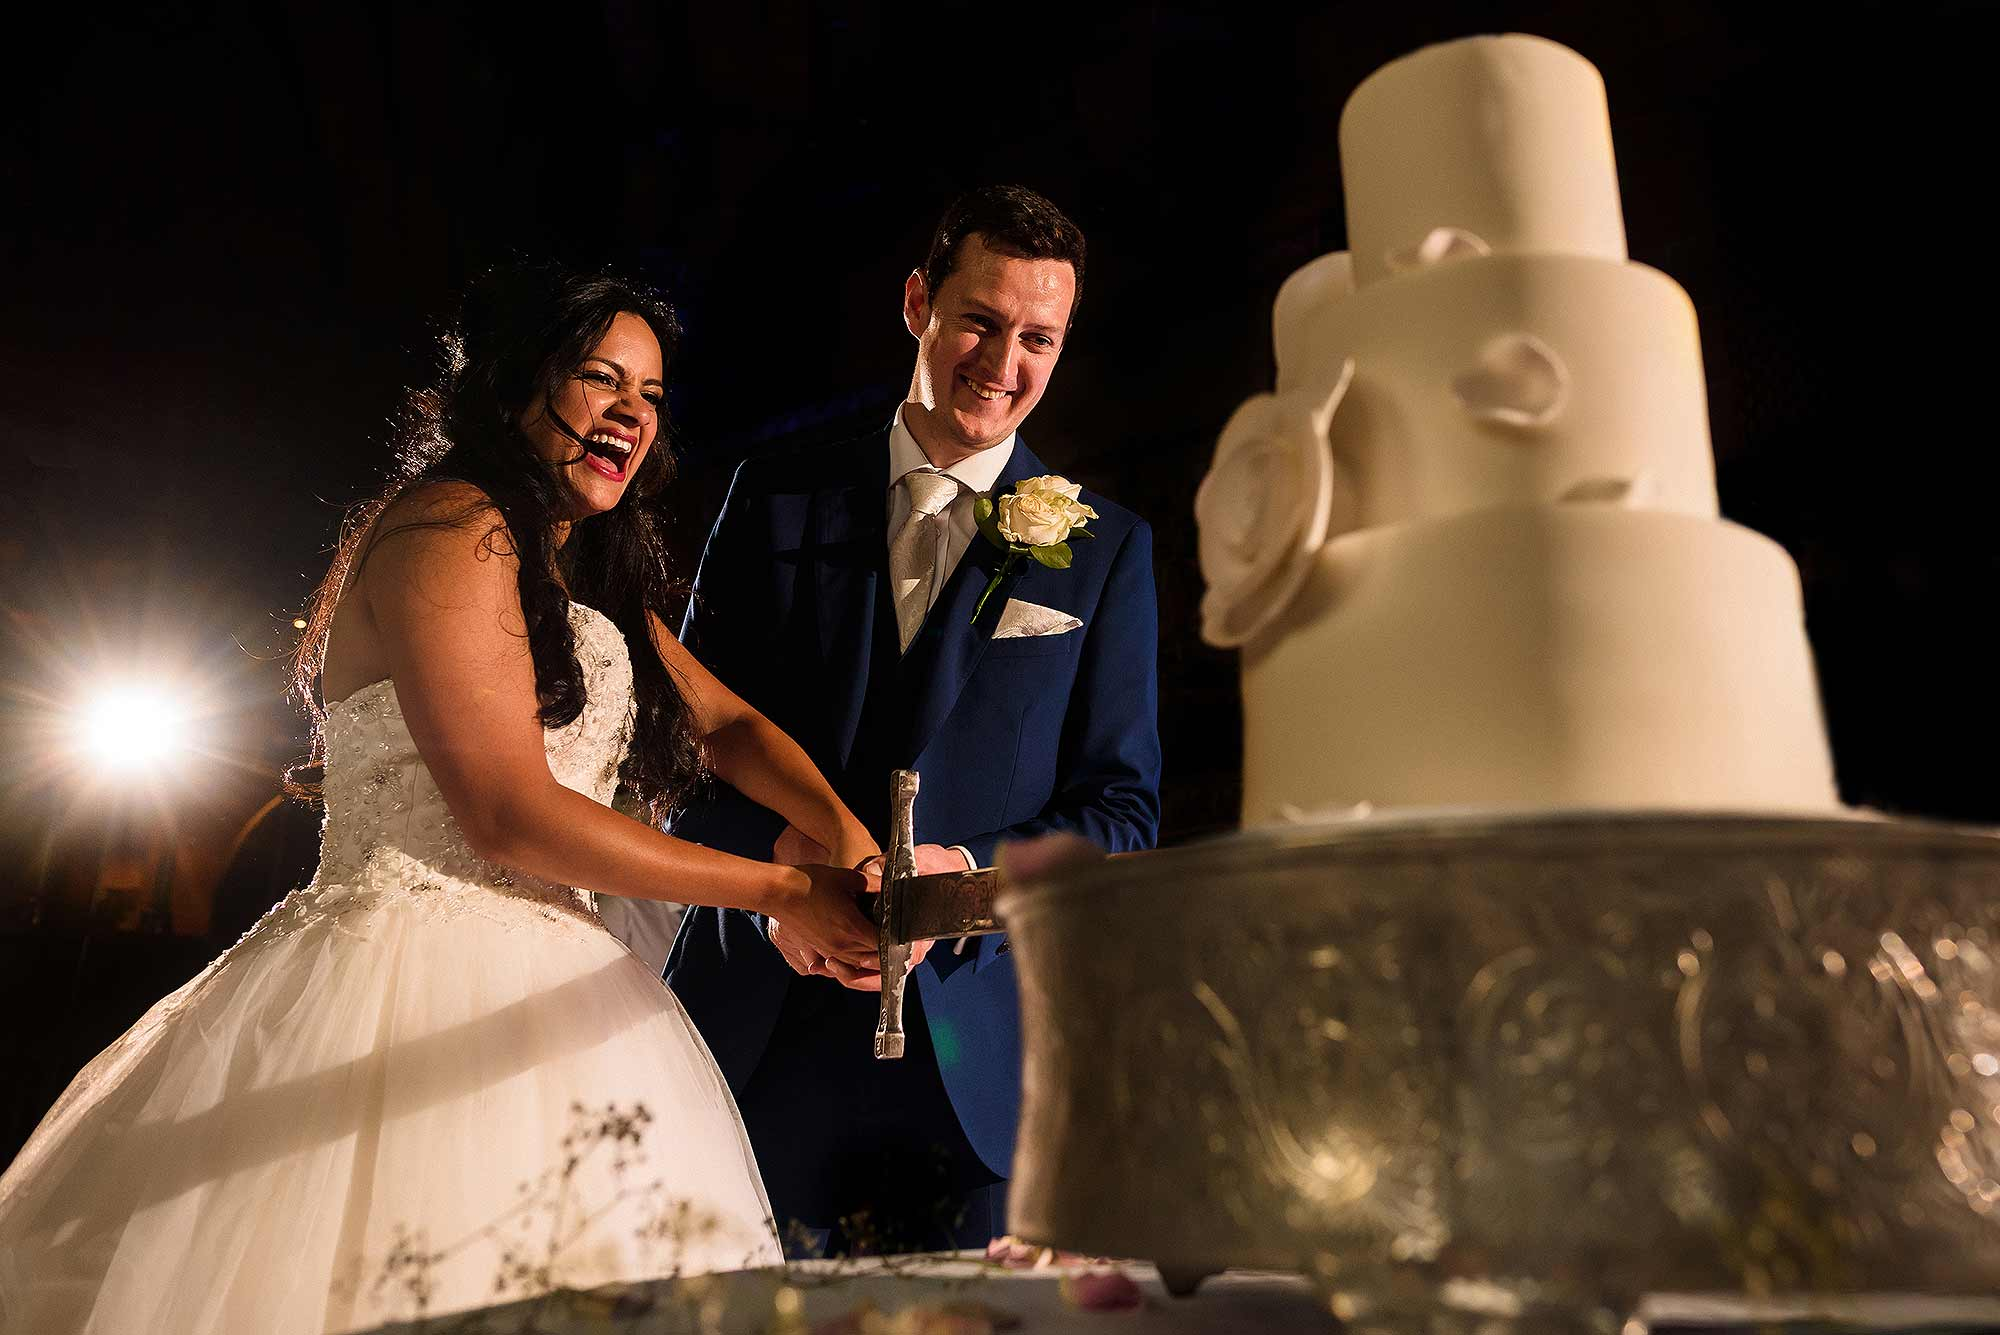 bride and groom cutting wedding cake at Peckforton Castle